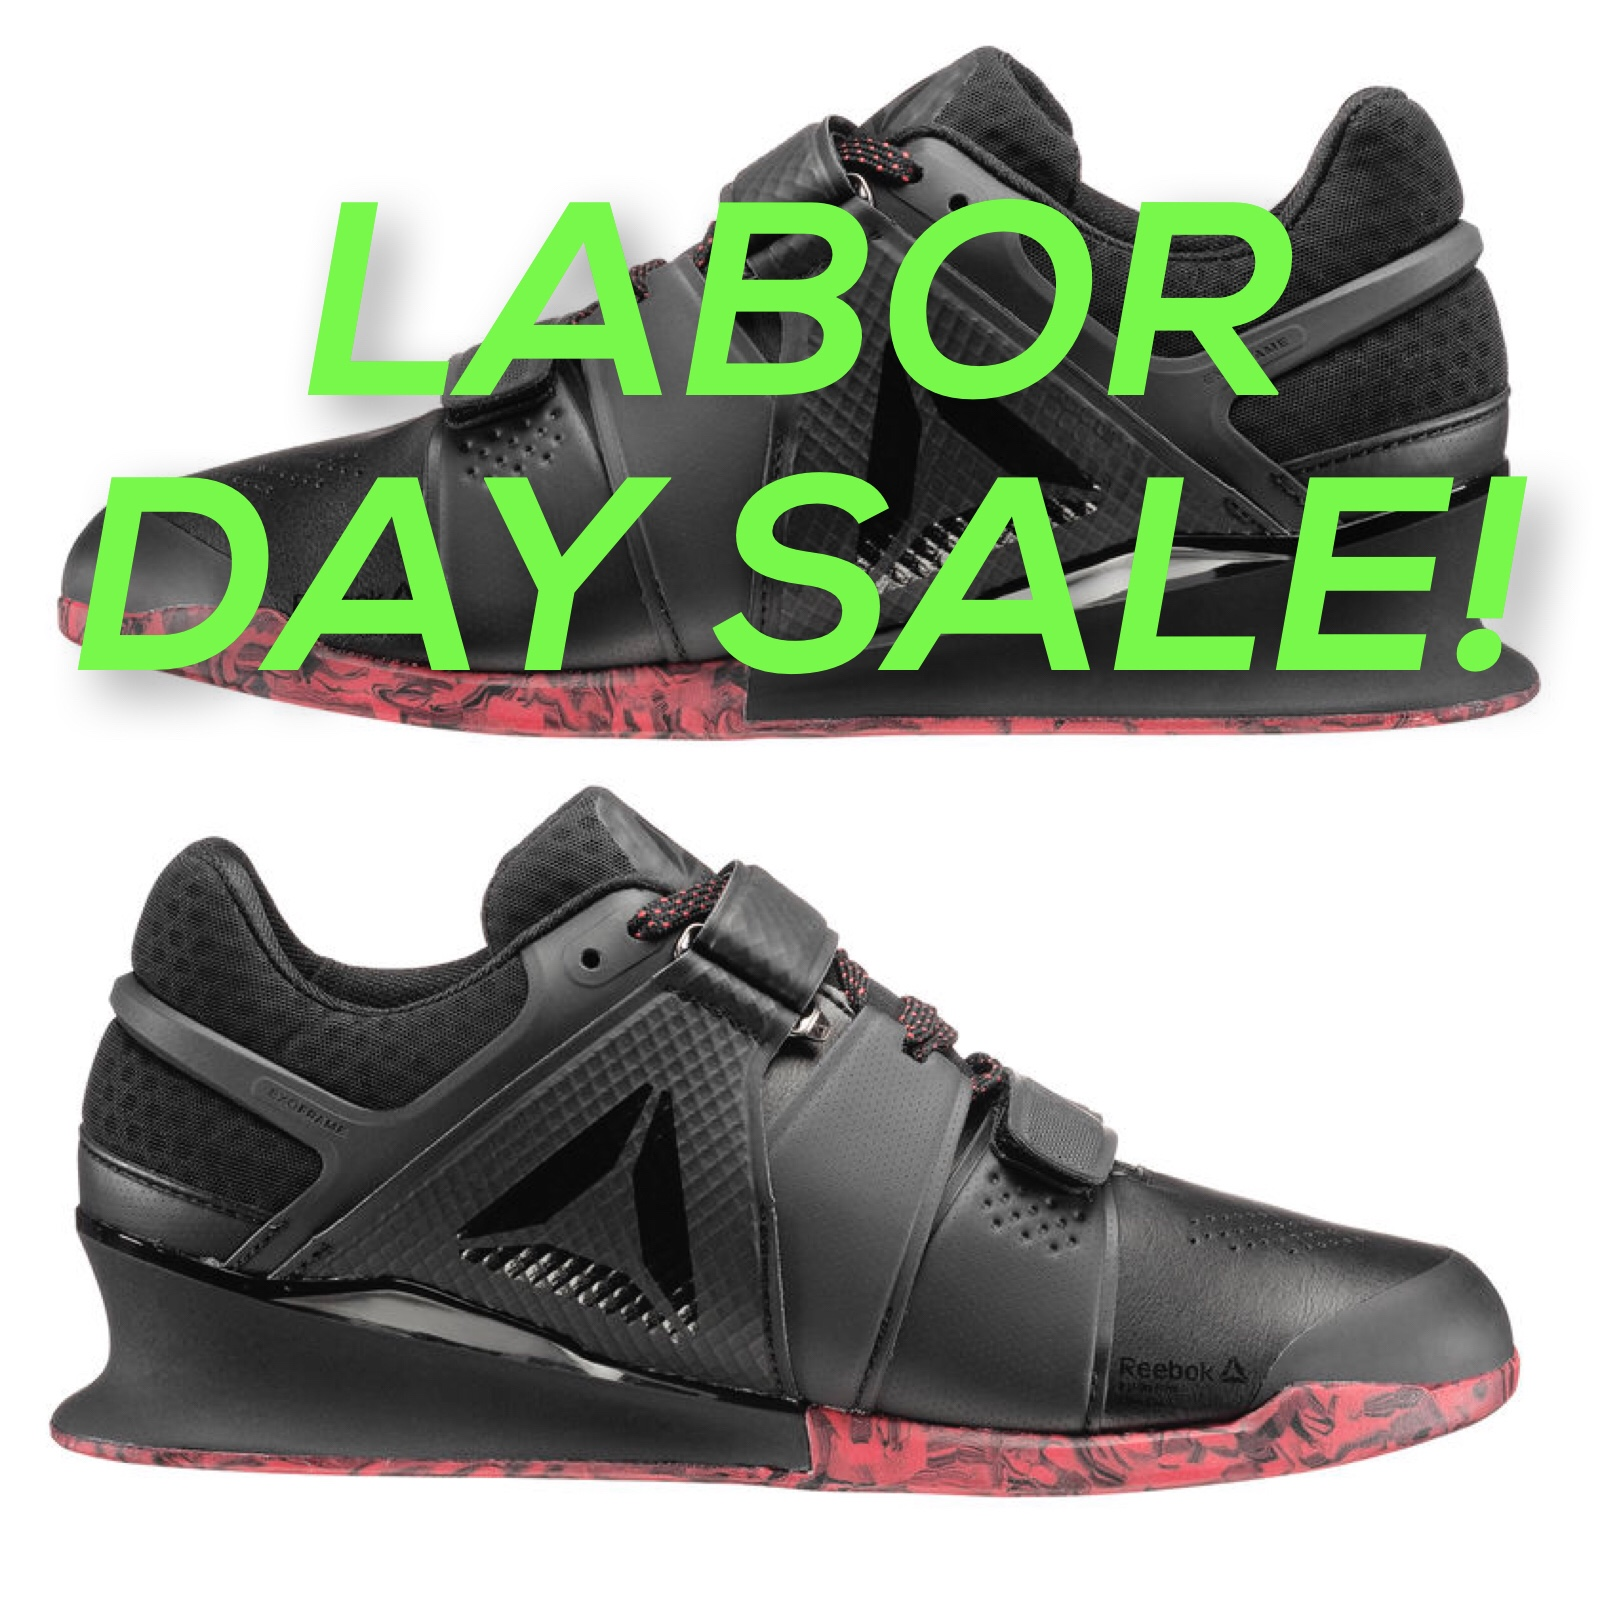 Reebok Labor Day Sale! Up to 40% OFF